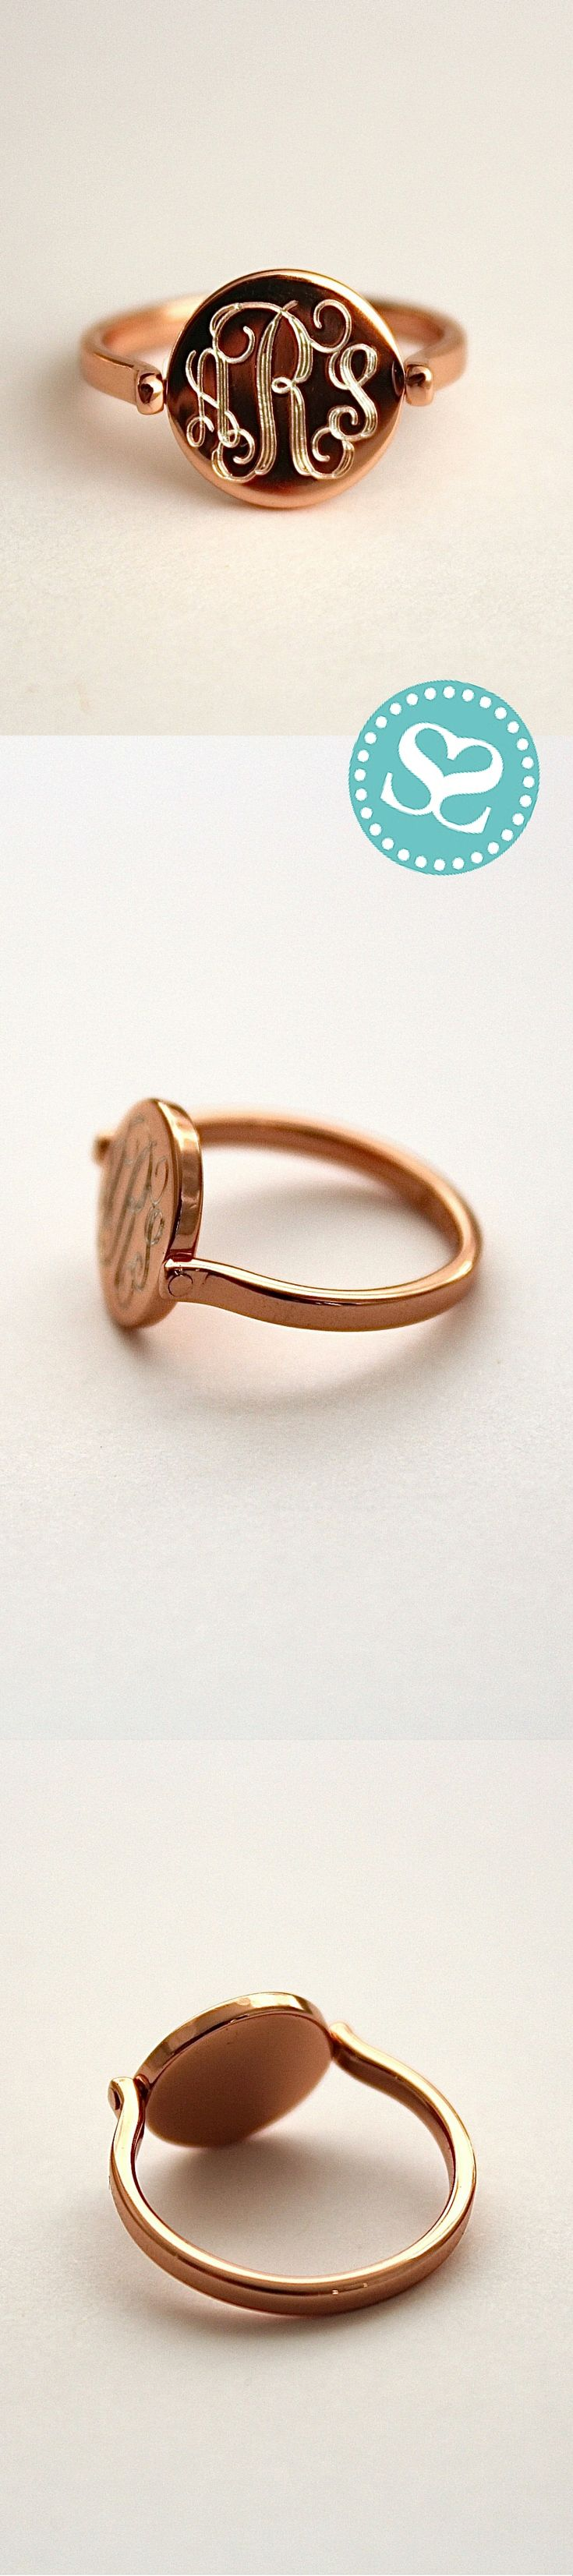 The Rosie Ring in Sterling Silver with Rose Gold Plating.  #Luxe #SwellCaroline